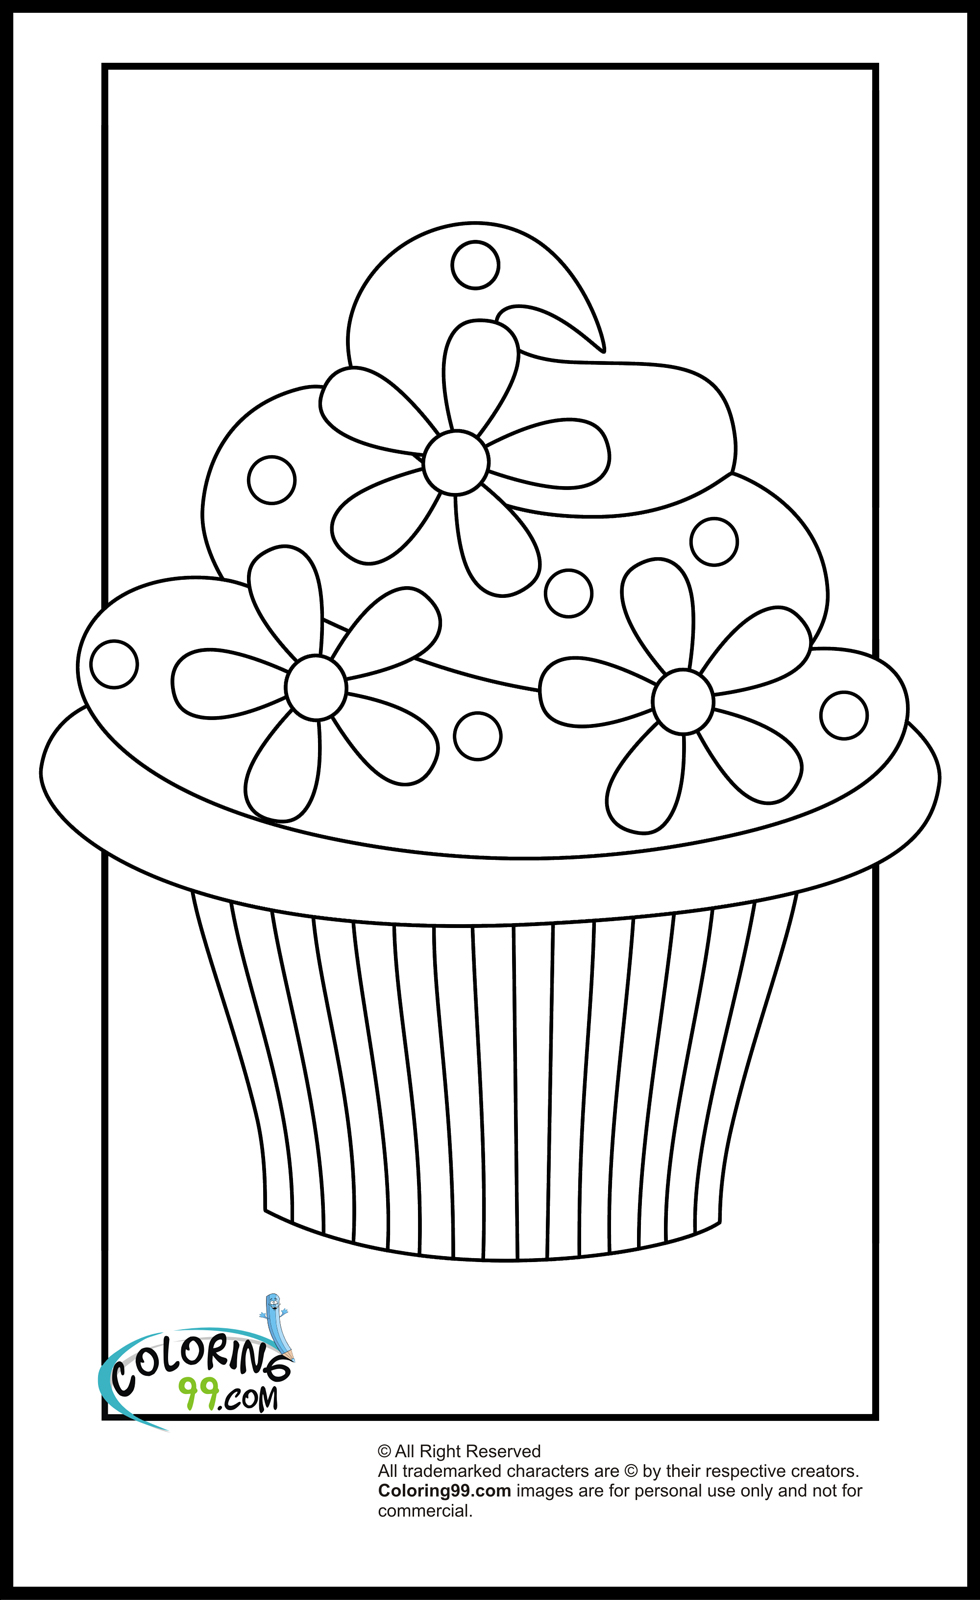 cupcakes coloring pages free printable cupcake coloring pages for kids cool2bkids cupcakes coloring pages